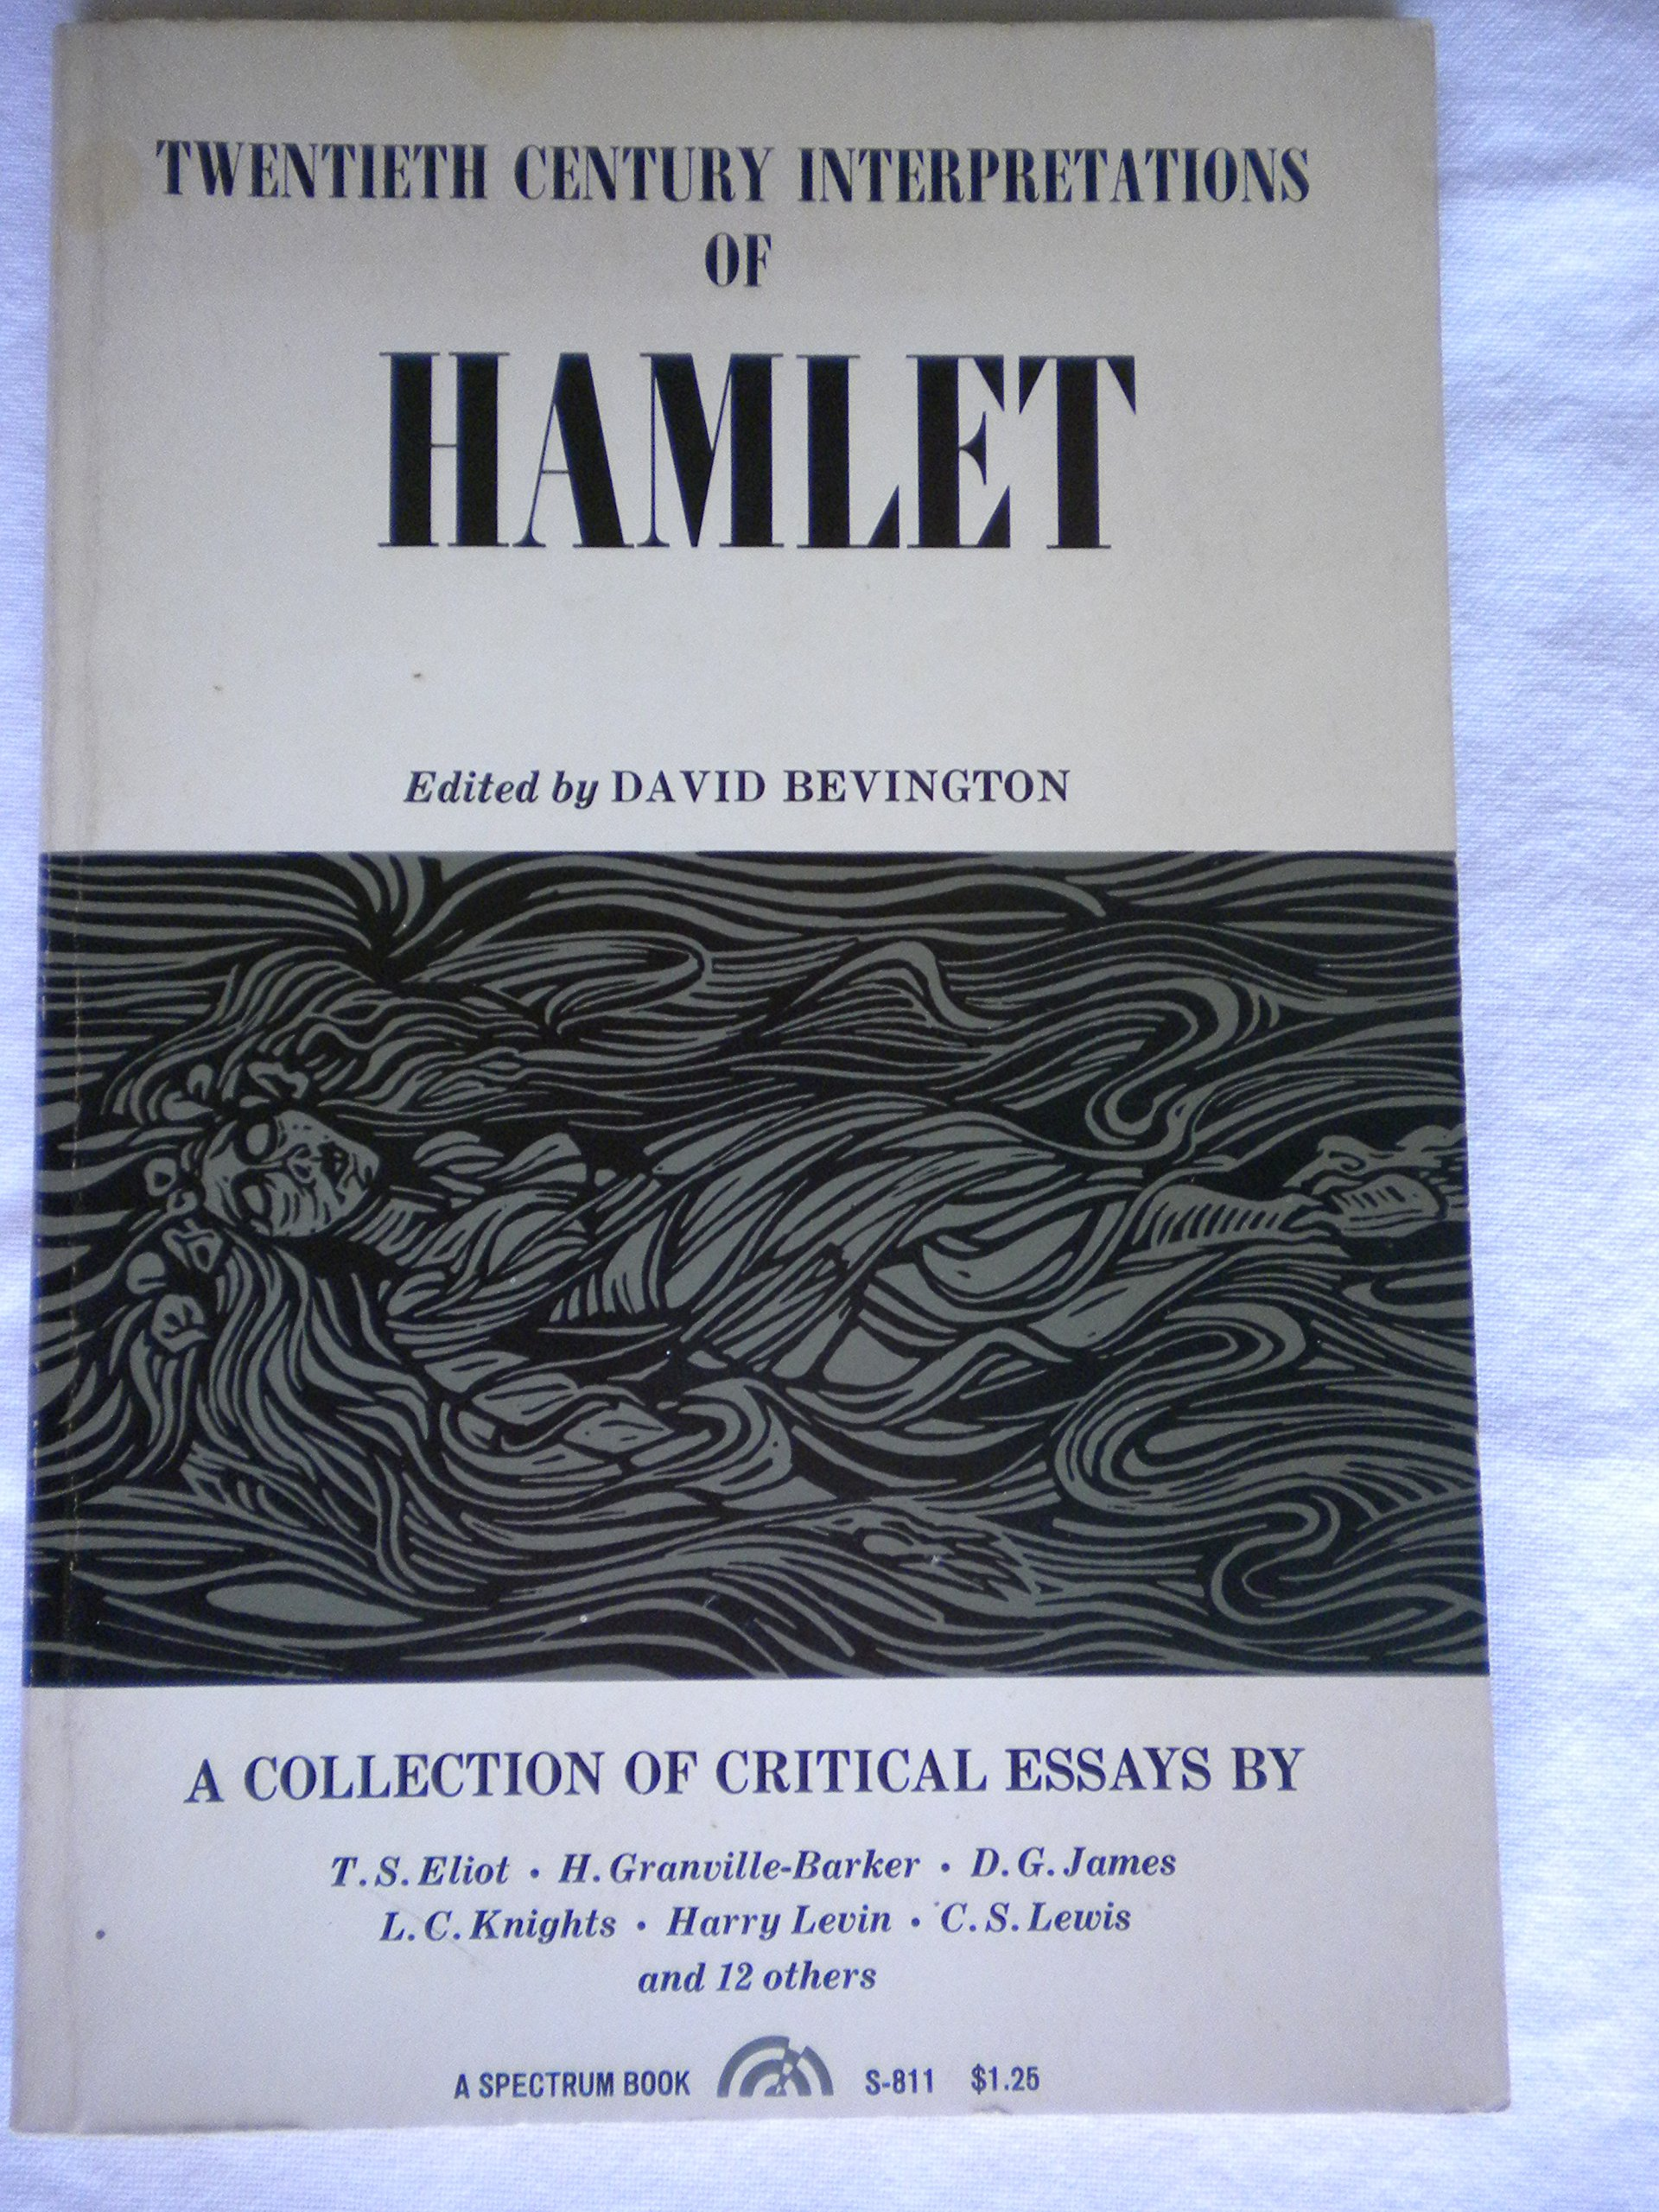 Synthesis Essay Ideas Twentieth Century Interpretations Of Hamlet A Collection Of Critical Essays  David Bevington Amazoncom Books Essay For Science also Essay Thesis Example Twentieth Century Interpretations Of Hamlet A Collection Of  Topics For Synthesis Essay